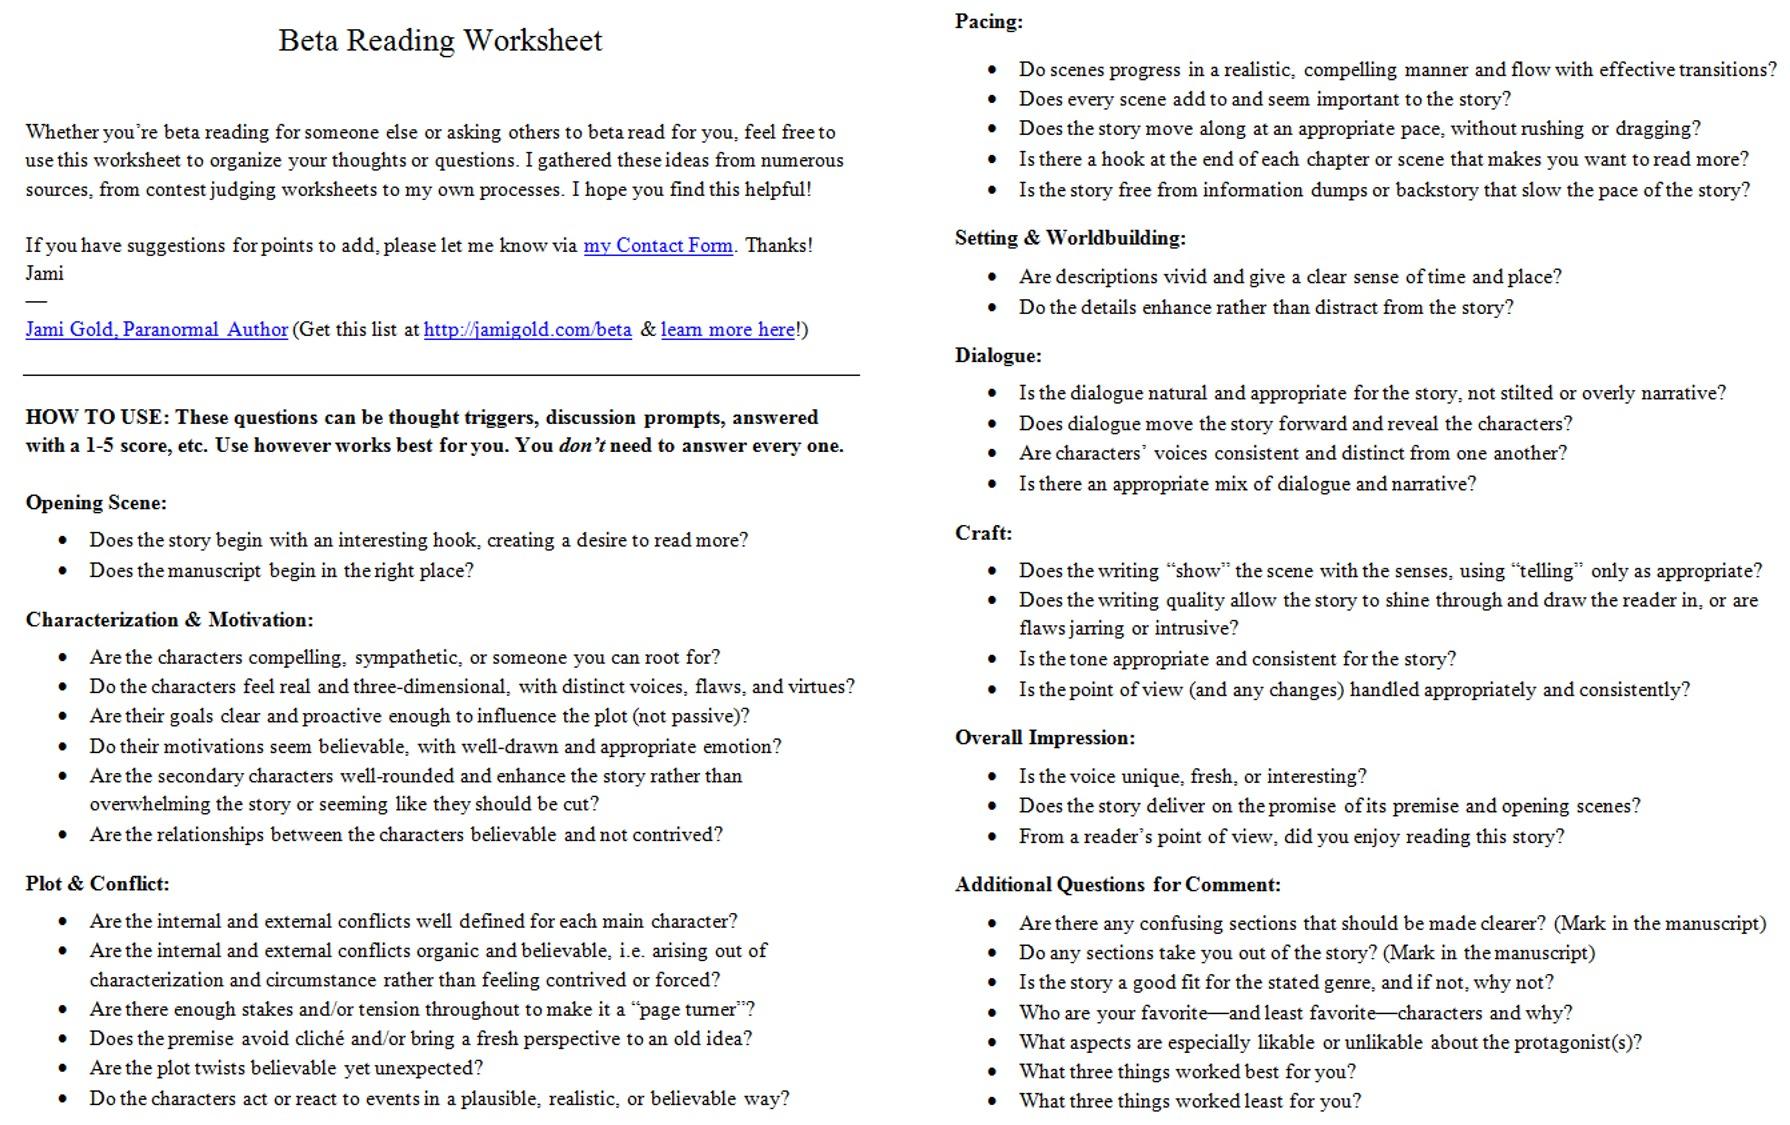 Aldiablosus  Stunning Worksheets For Writers  Jami Gold Paranormal Author With Fair Screen Shot Of The Twopage Beta Reading Worksheet With Captivating Adjectives And Nouns Worksheet Also At Worksheets For Kindergarten In Addition Free Printable Worksheets For Prek And Conflict And Resolution Worksheets As Well As S Corporation Basis Worksheet Additionally Spanish Phonics Worksheets From Jamigoldcom With Aldiablosus  Fair Worksheets For Writers  Jami Gold Paranormal Author With Captivating Screen Shot Of The Twopage Beta Reading Worksheet And Stunning Adjectives And Nouns Worksheet Also At Worksheets For Kindergarten In Addition Free Printable Worksheets For Prek From Jamigoldcom